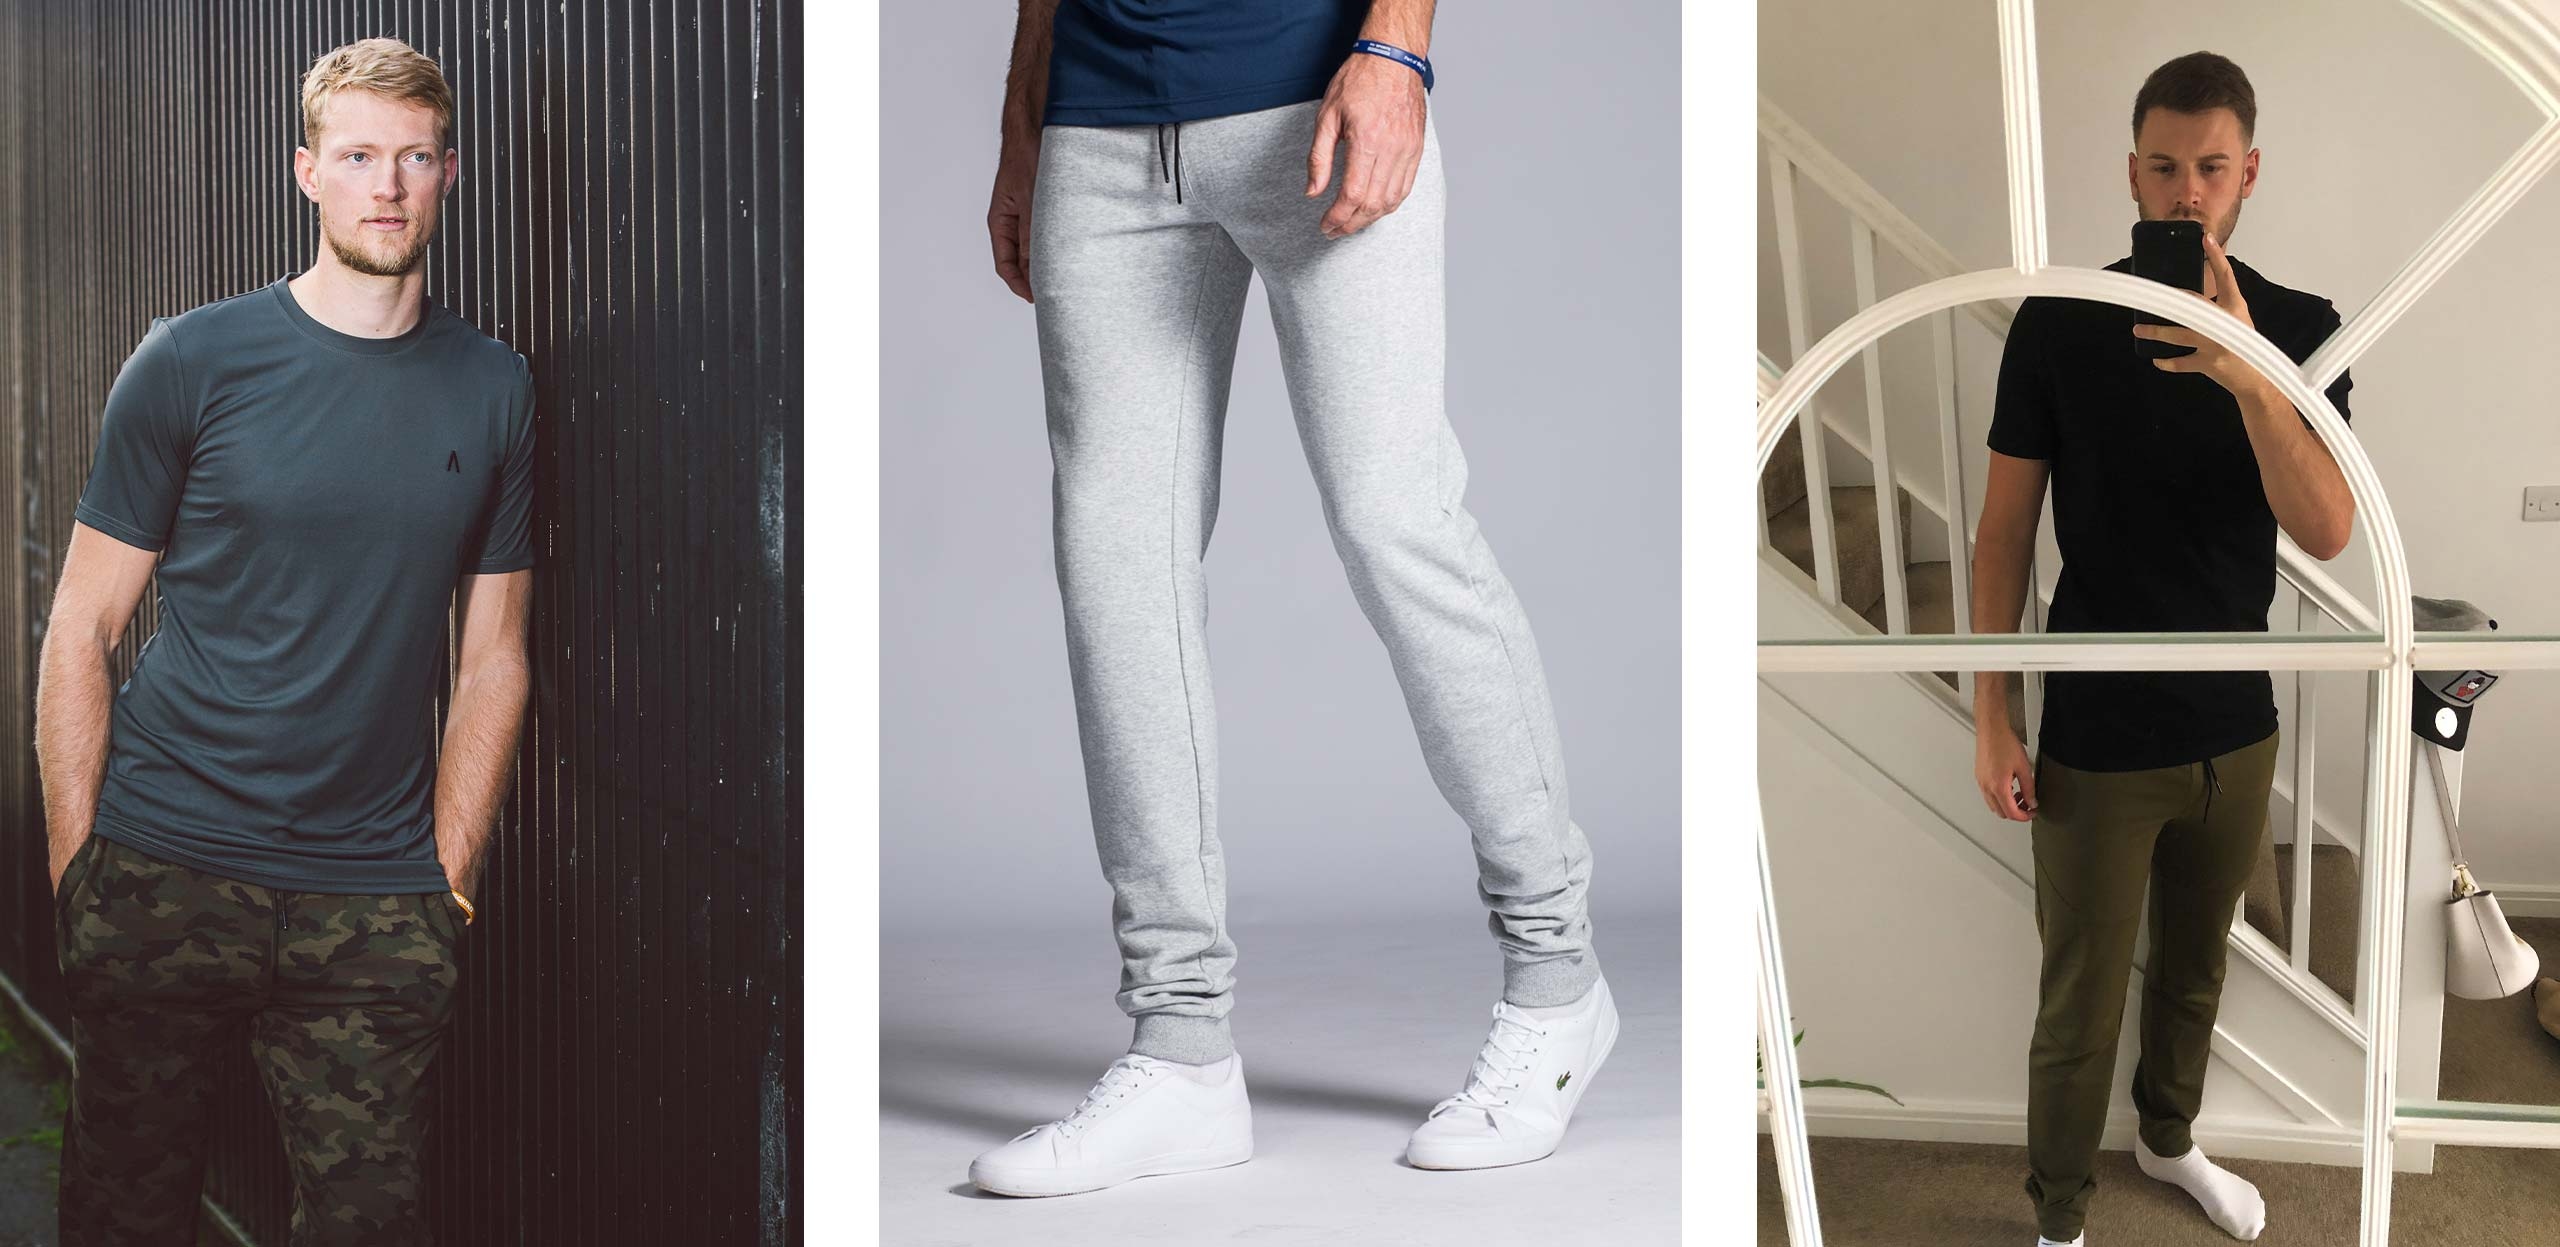 Available in either 36 or 38 inch inside leg lengths, our joggers for tall men make for the ideal gift this Christmas.